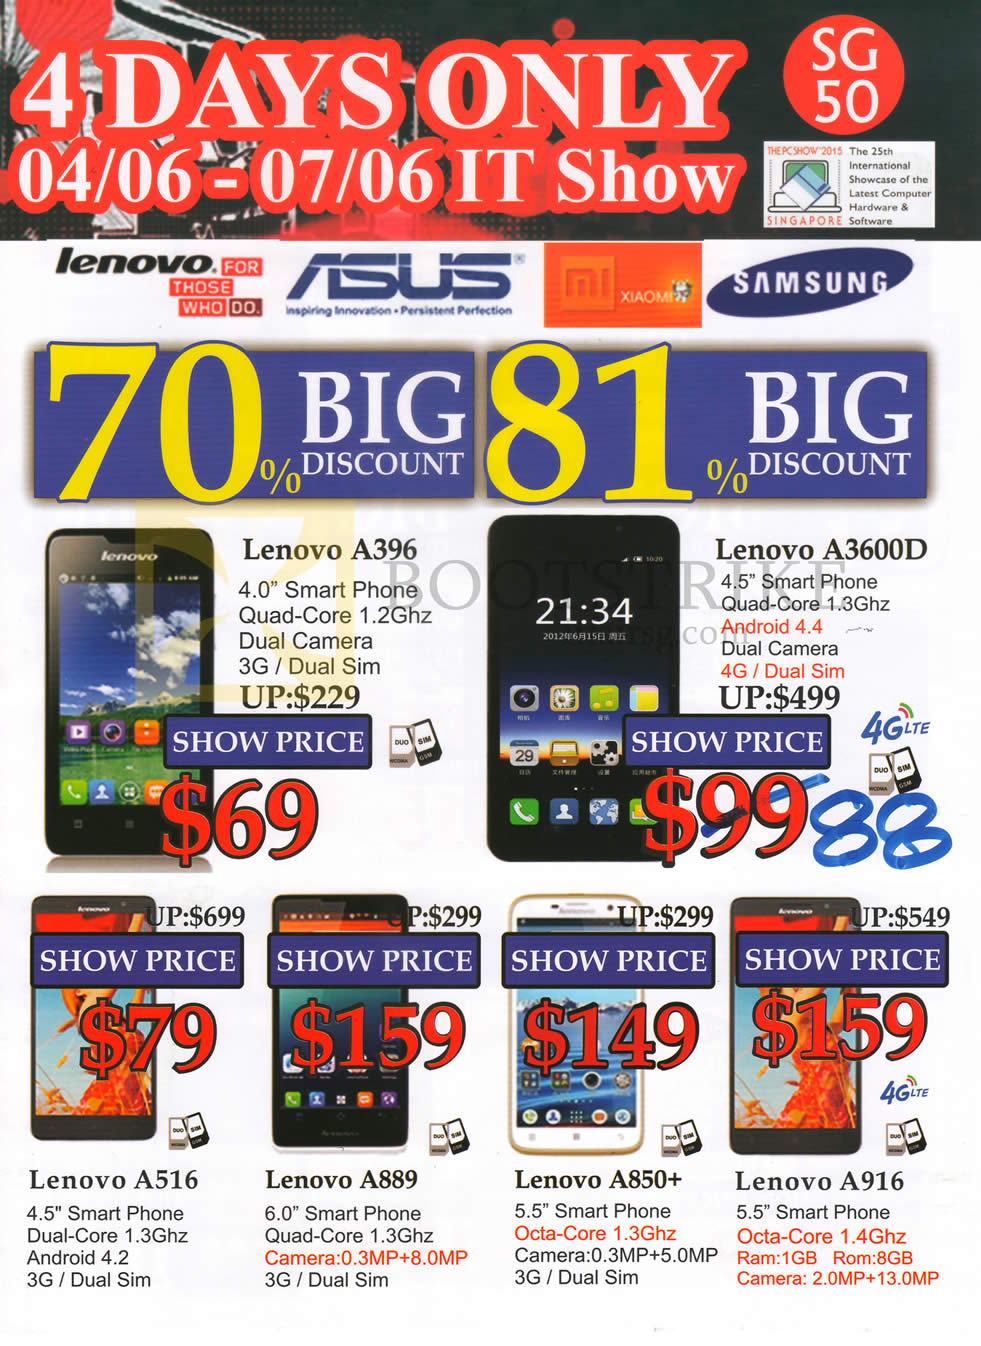 PC SHOW 2015 price list image brochure of SGVideopro Mobile Phones Lenovo, A396, A3600D, A516, A889, A850, A916